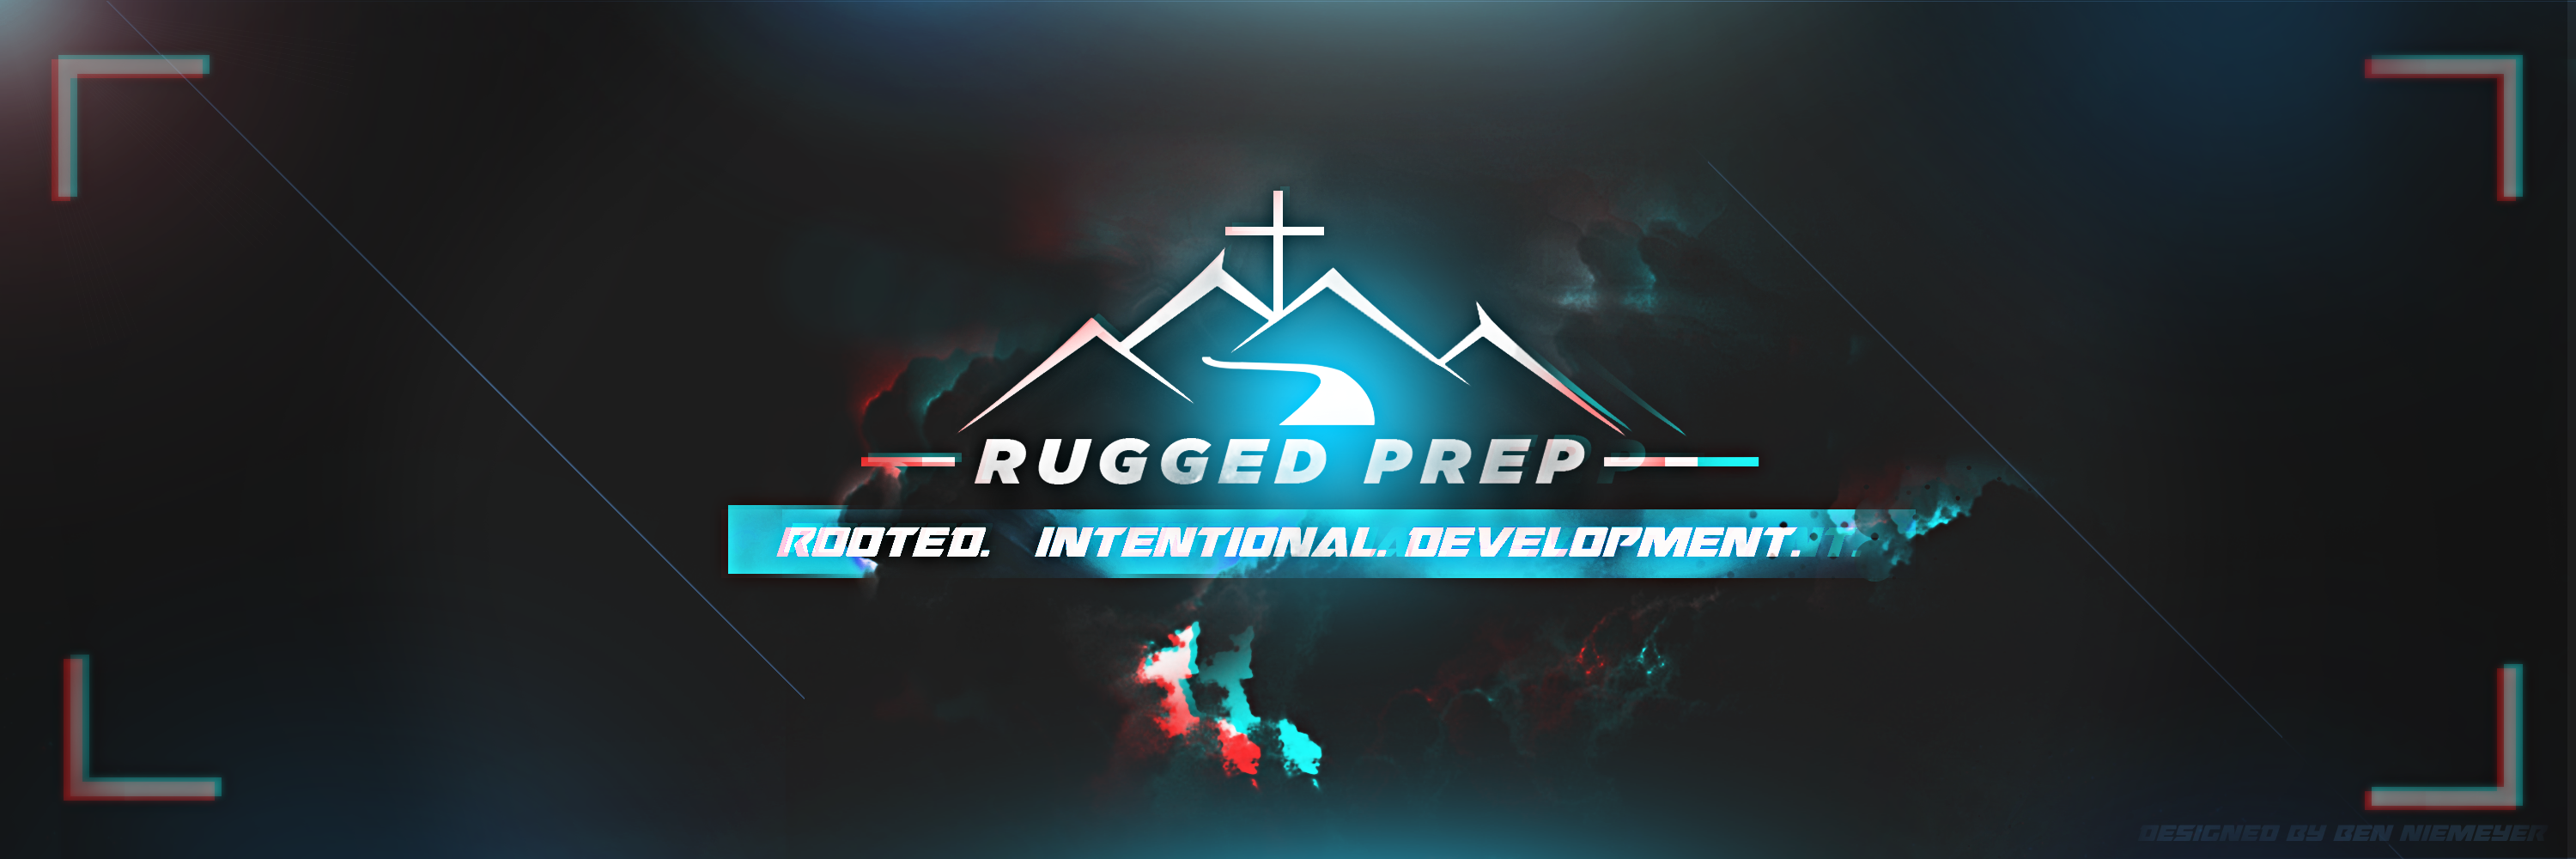 Rugged Prep Twitter Header